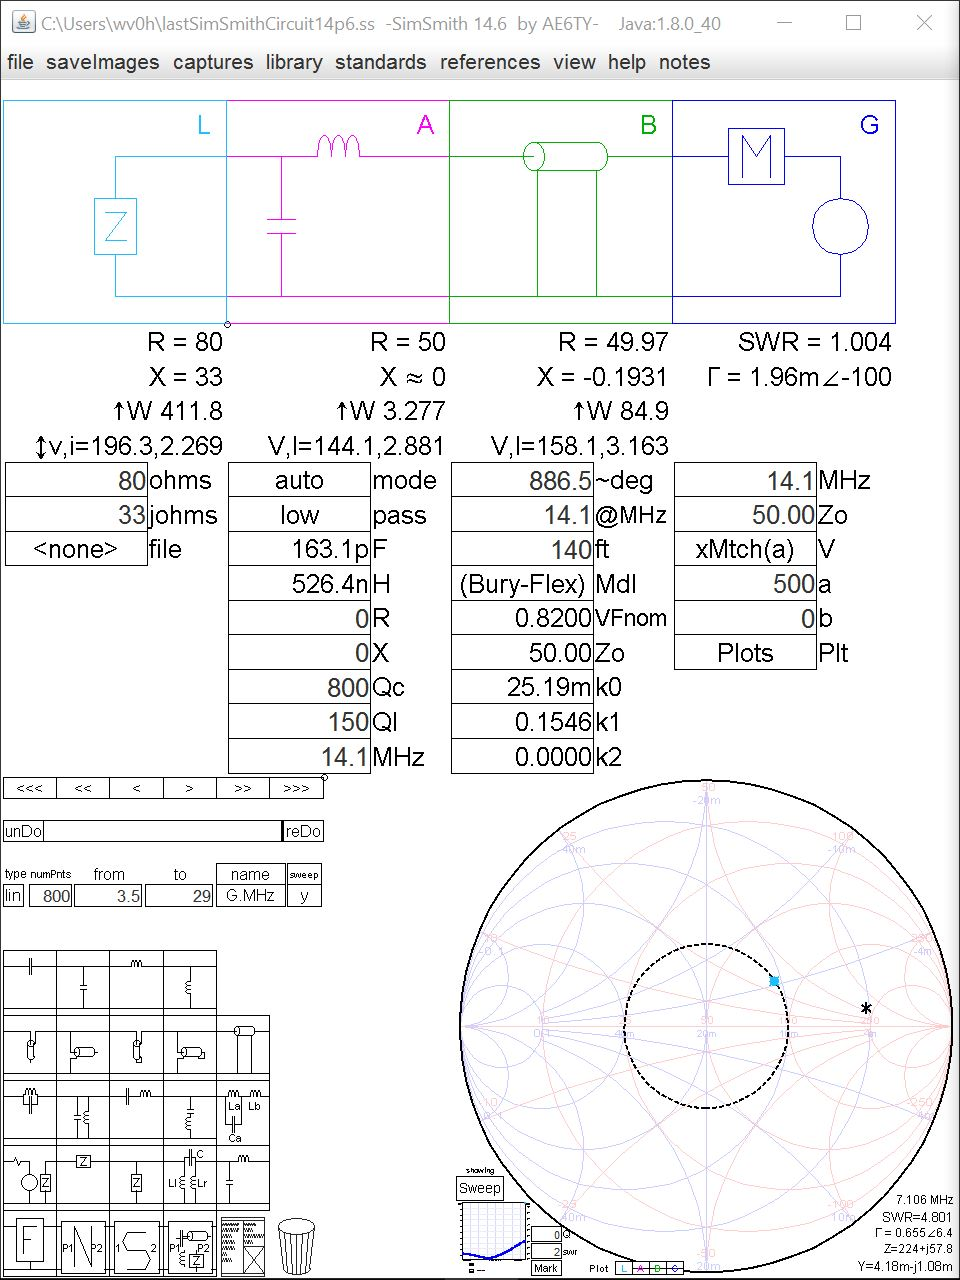 hight resolution of case 1b 2 1 high z 80 j33ohms tuner at antenna